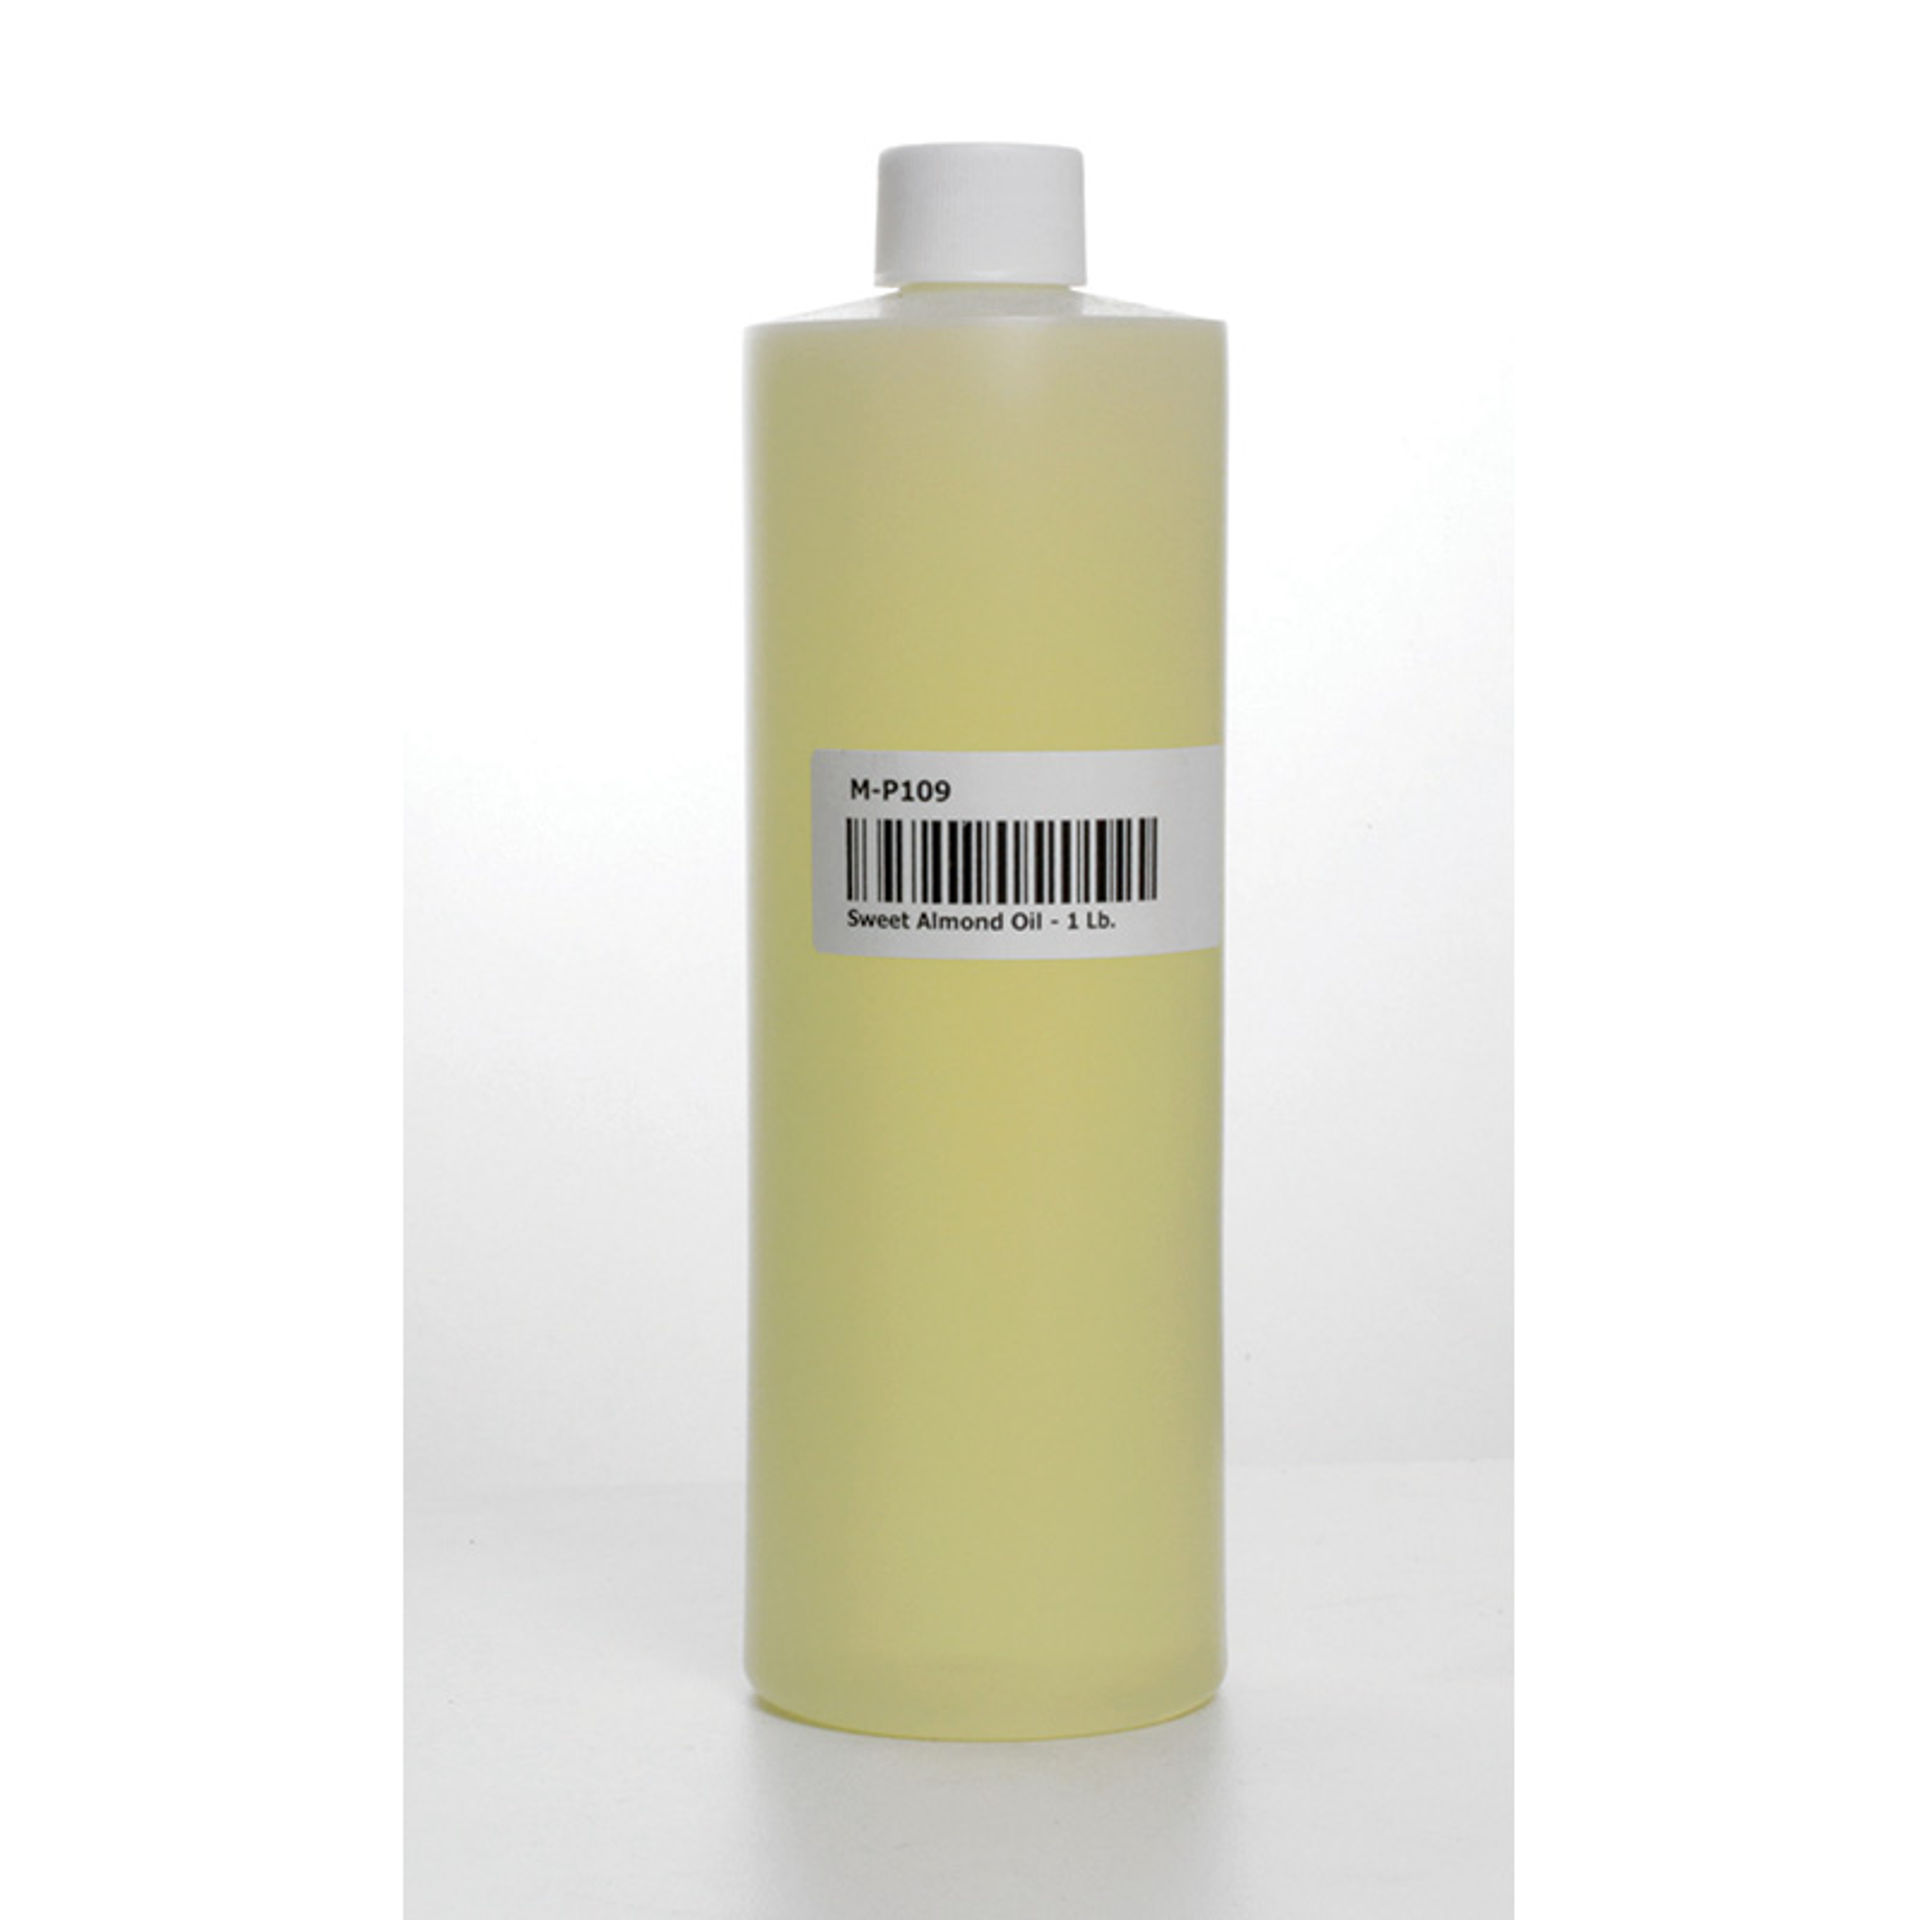 Picture of Sweet Almond Oil - 1 Lb.